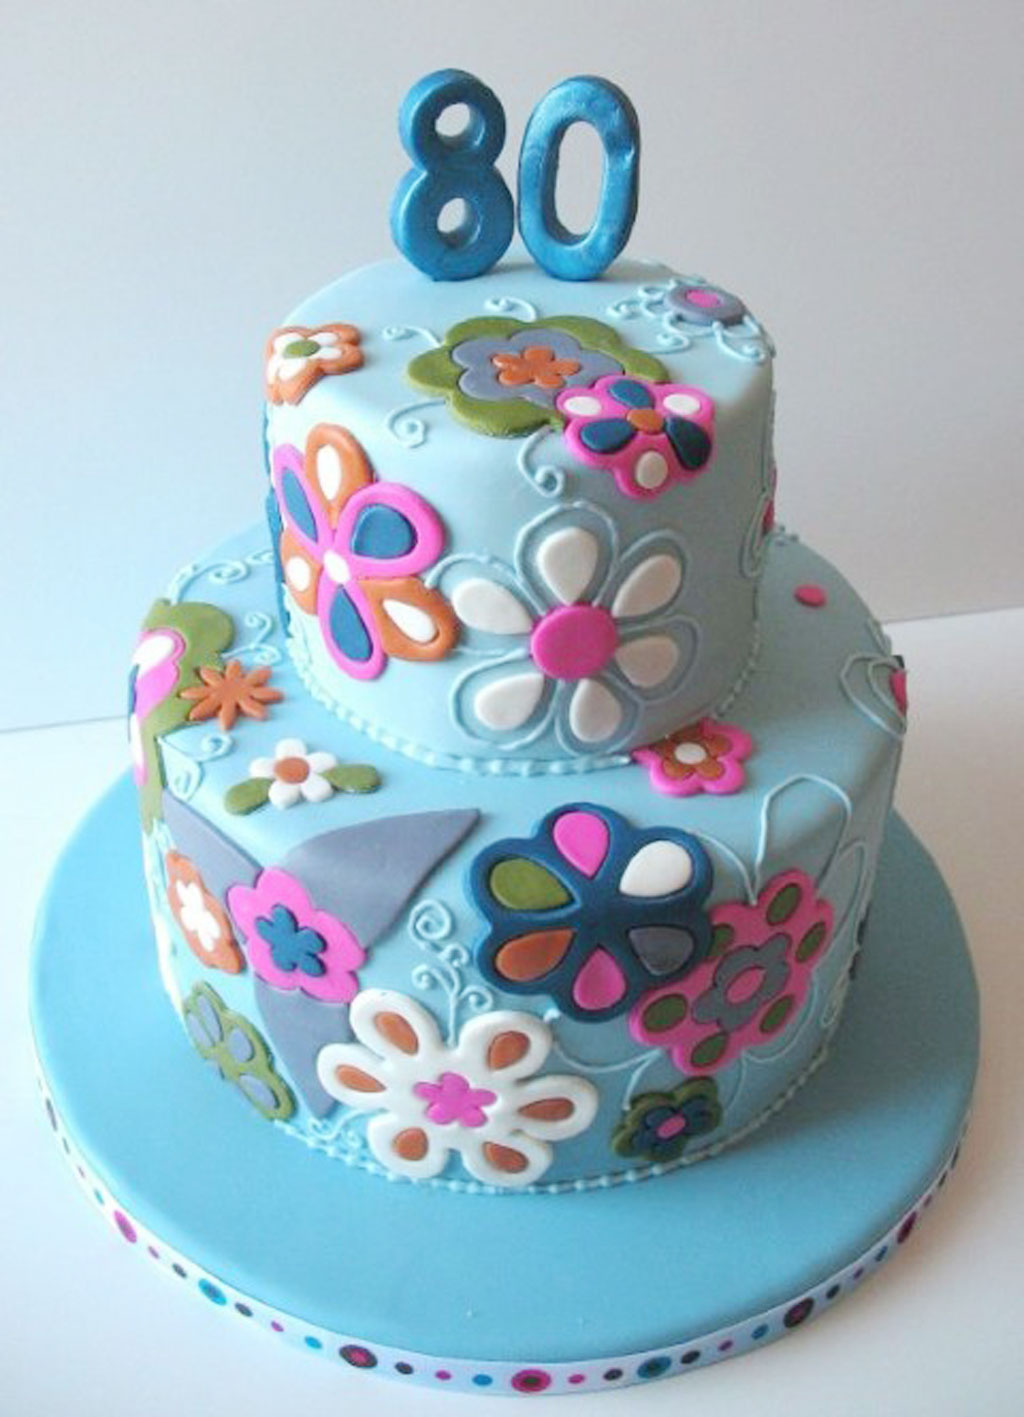 Cake Designs At Albertsons : Albertsons Birthday Cakes Birthday Cake - Cake Ideas by ...